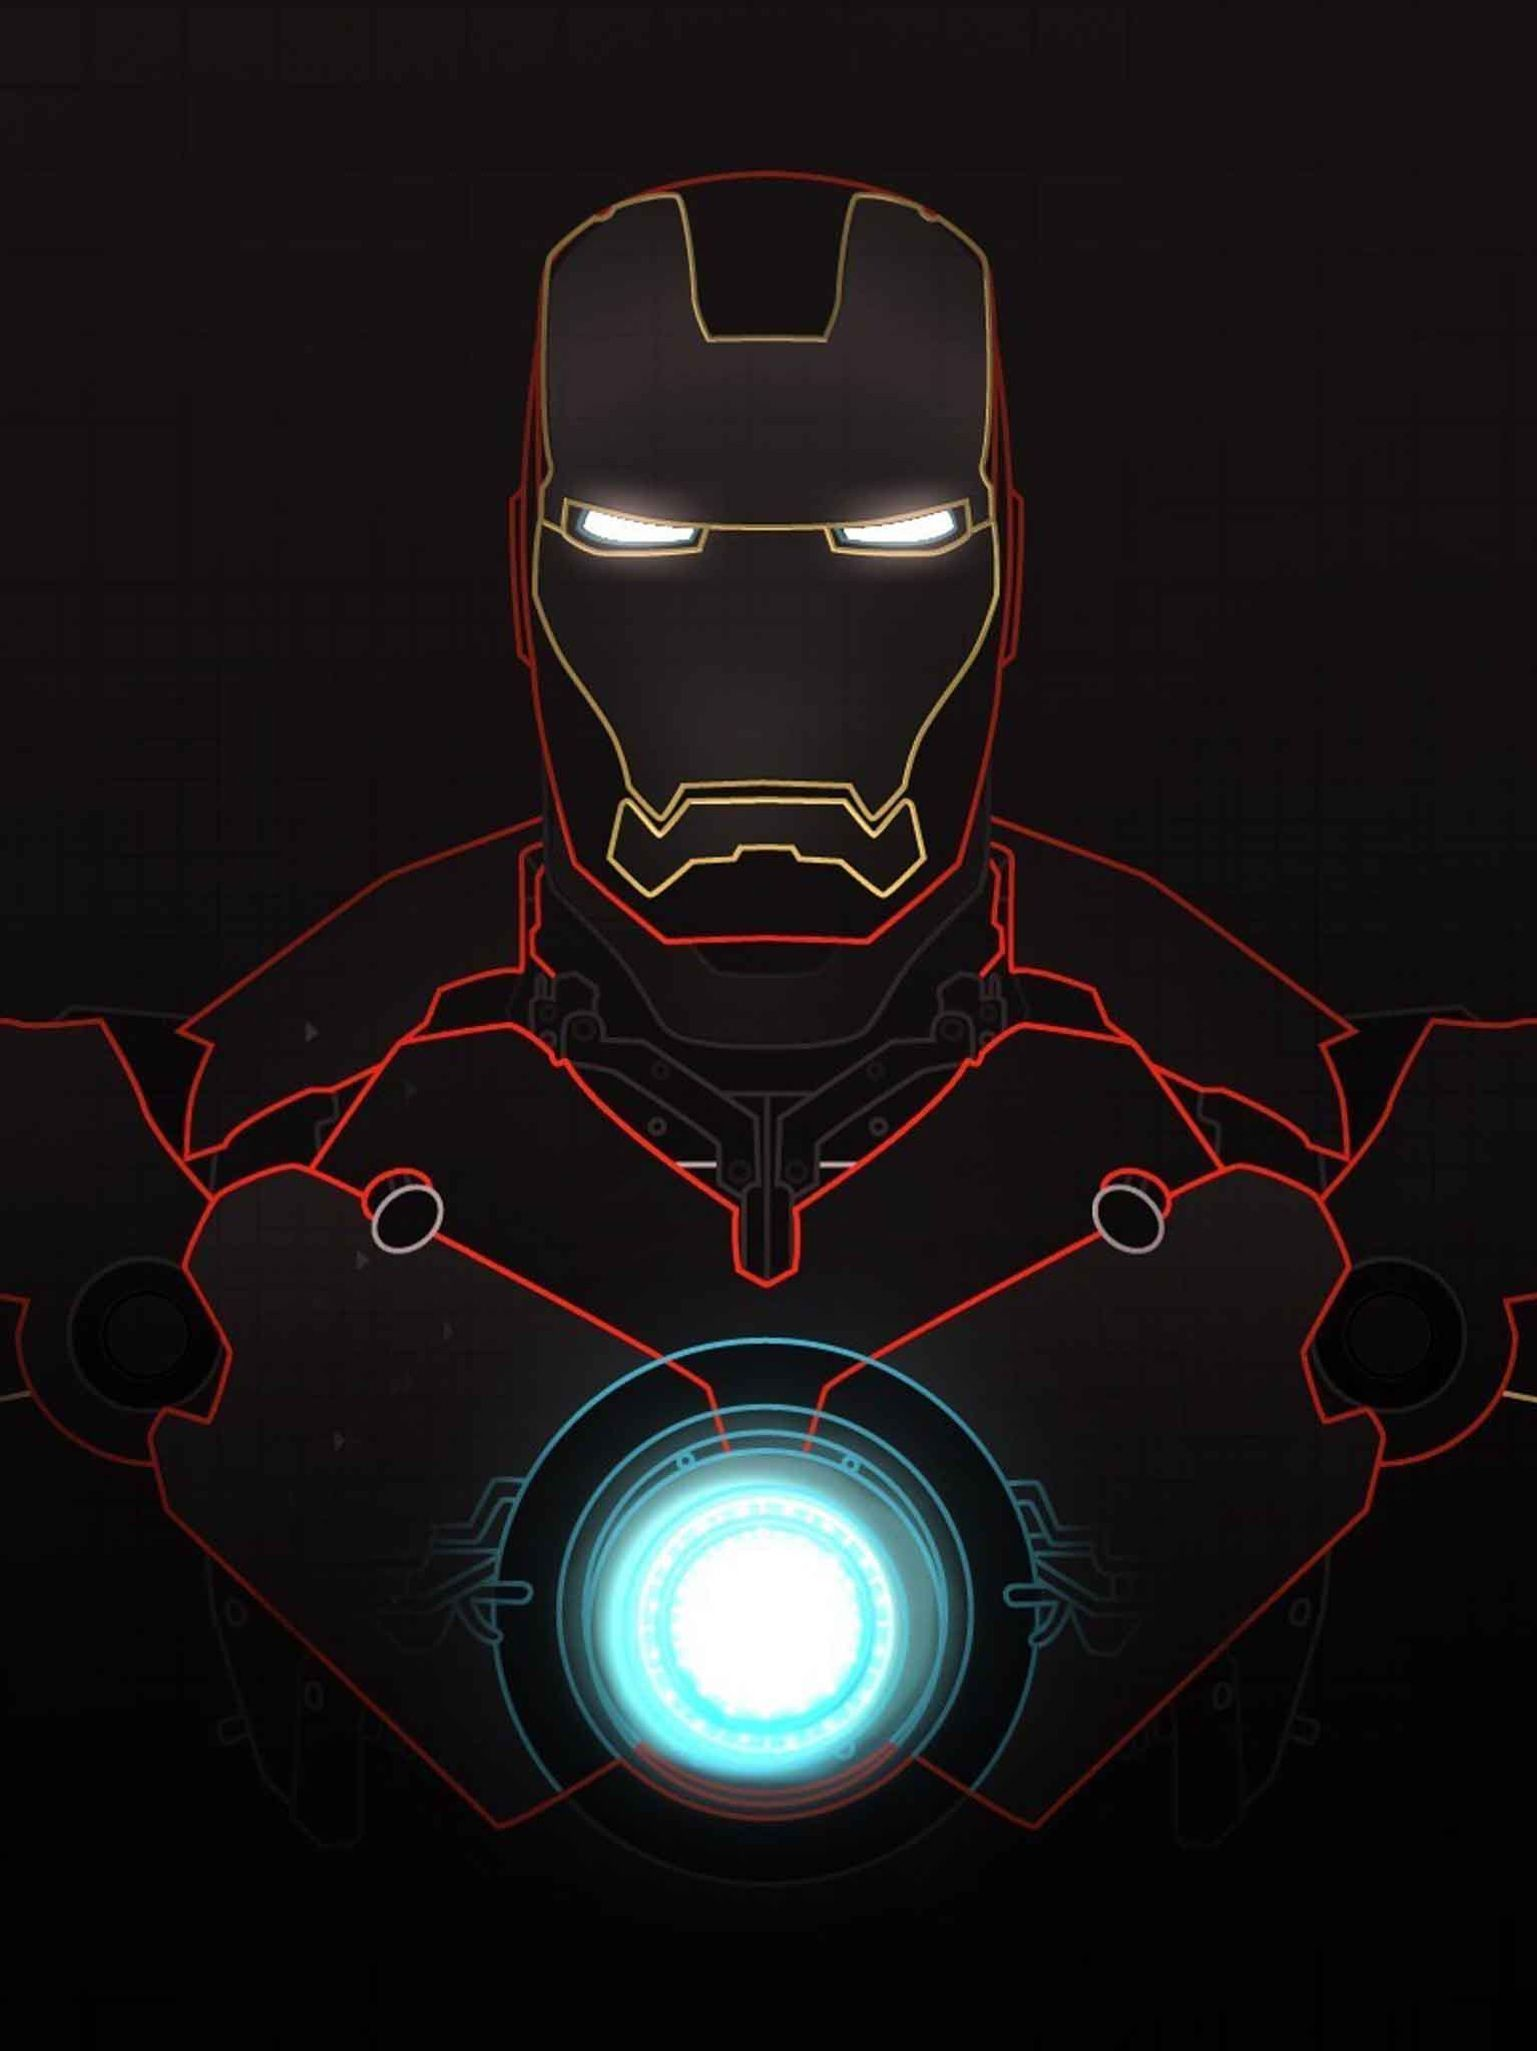 Iron man iphone wallpaper tumblr - Iron Man Ipad Wallpaper Marvel Pinterest Ipad Iron And Wallpaper